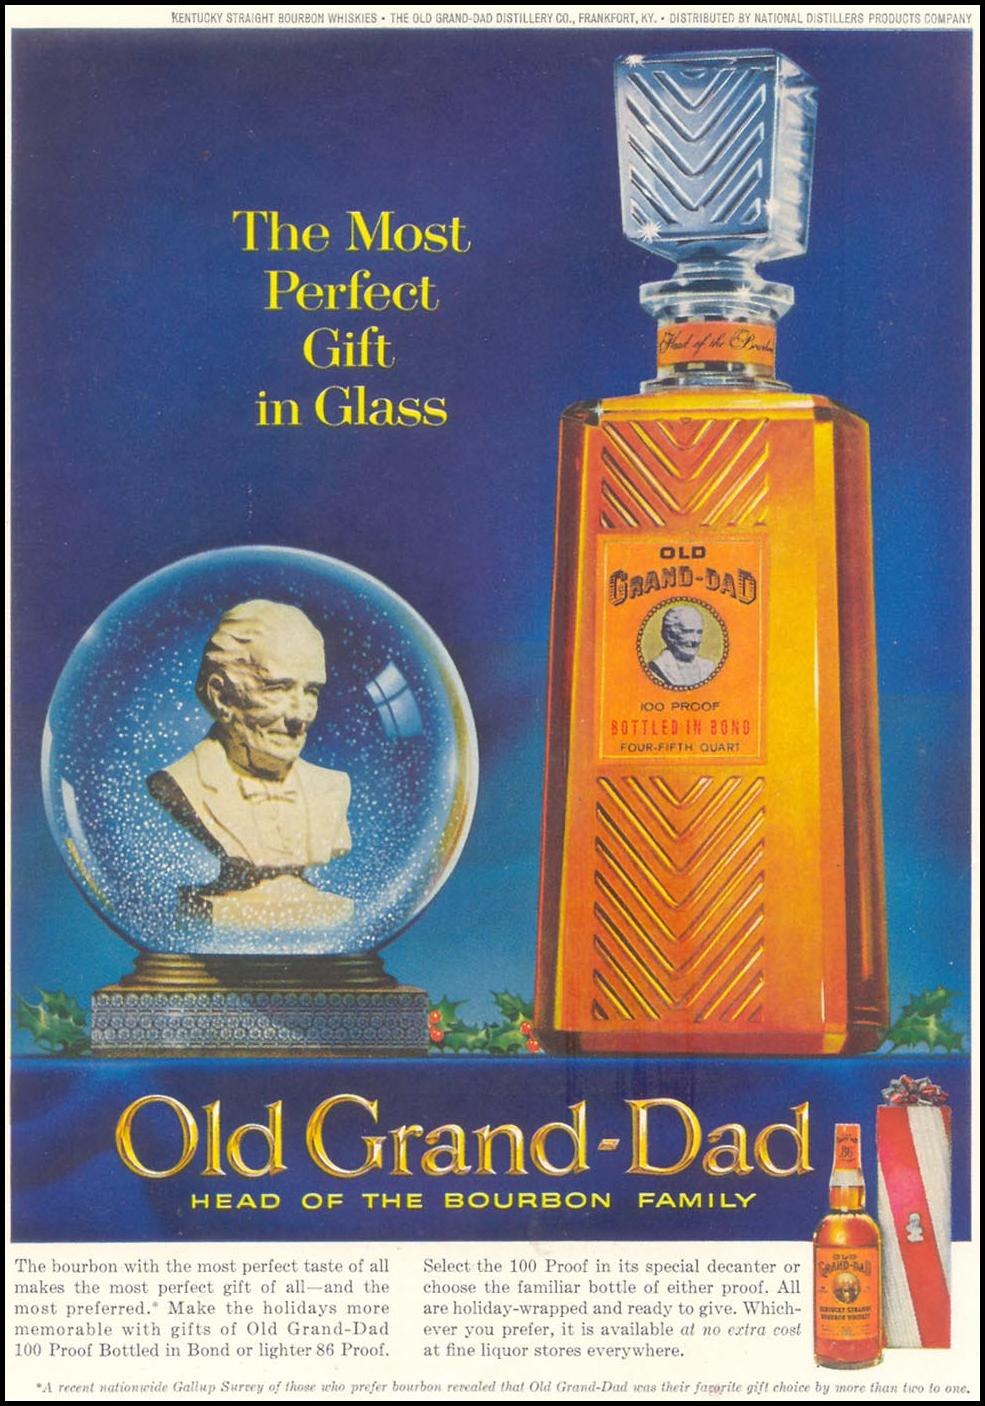 OLD GRAND-DAD BOURBON WHISKEY TIME 12/07/1962 INSIDE BACK